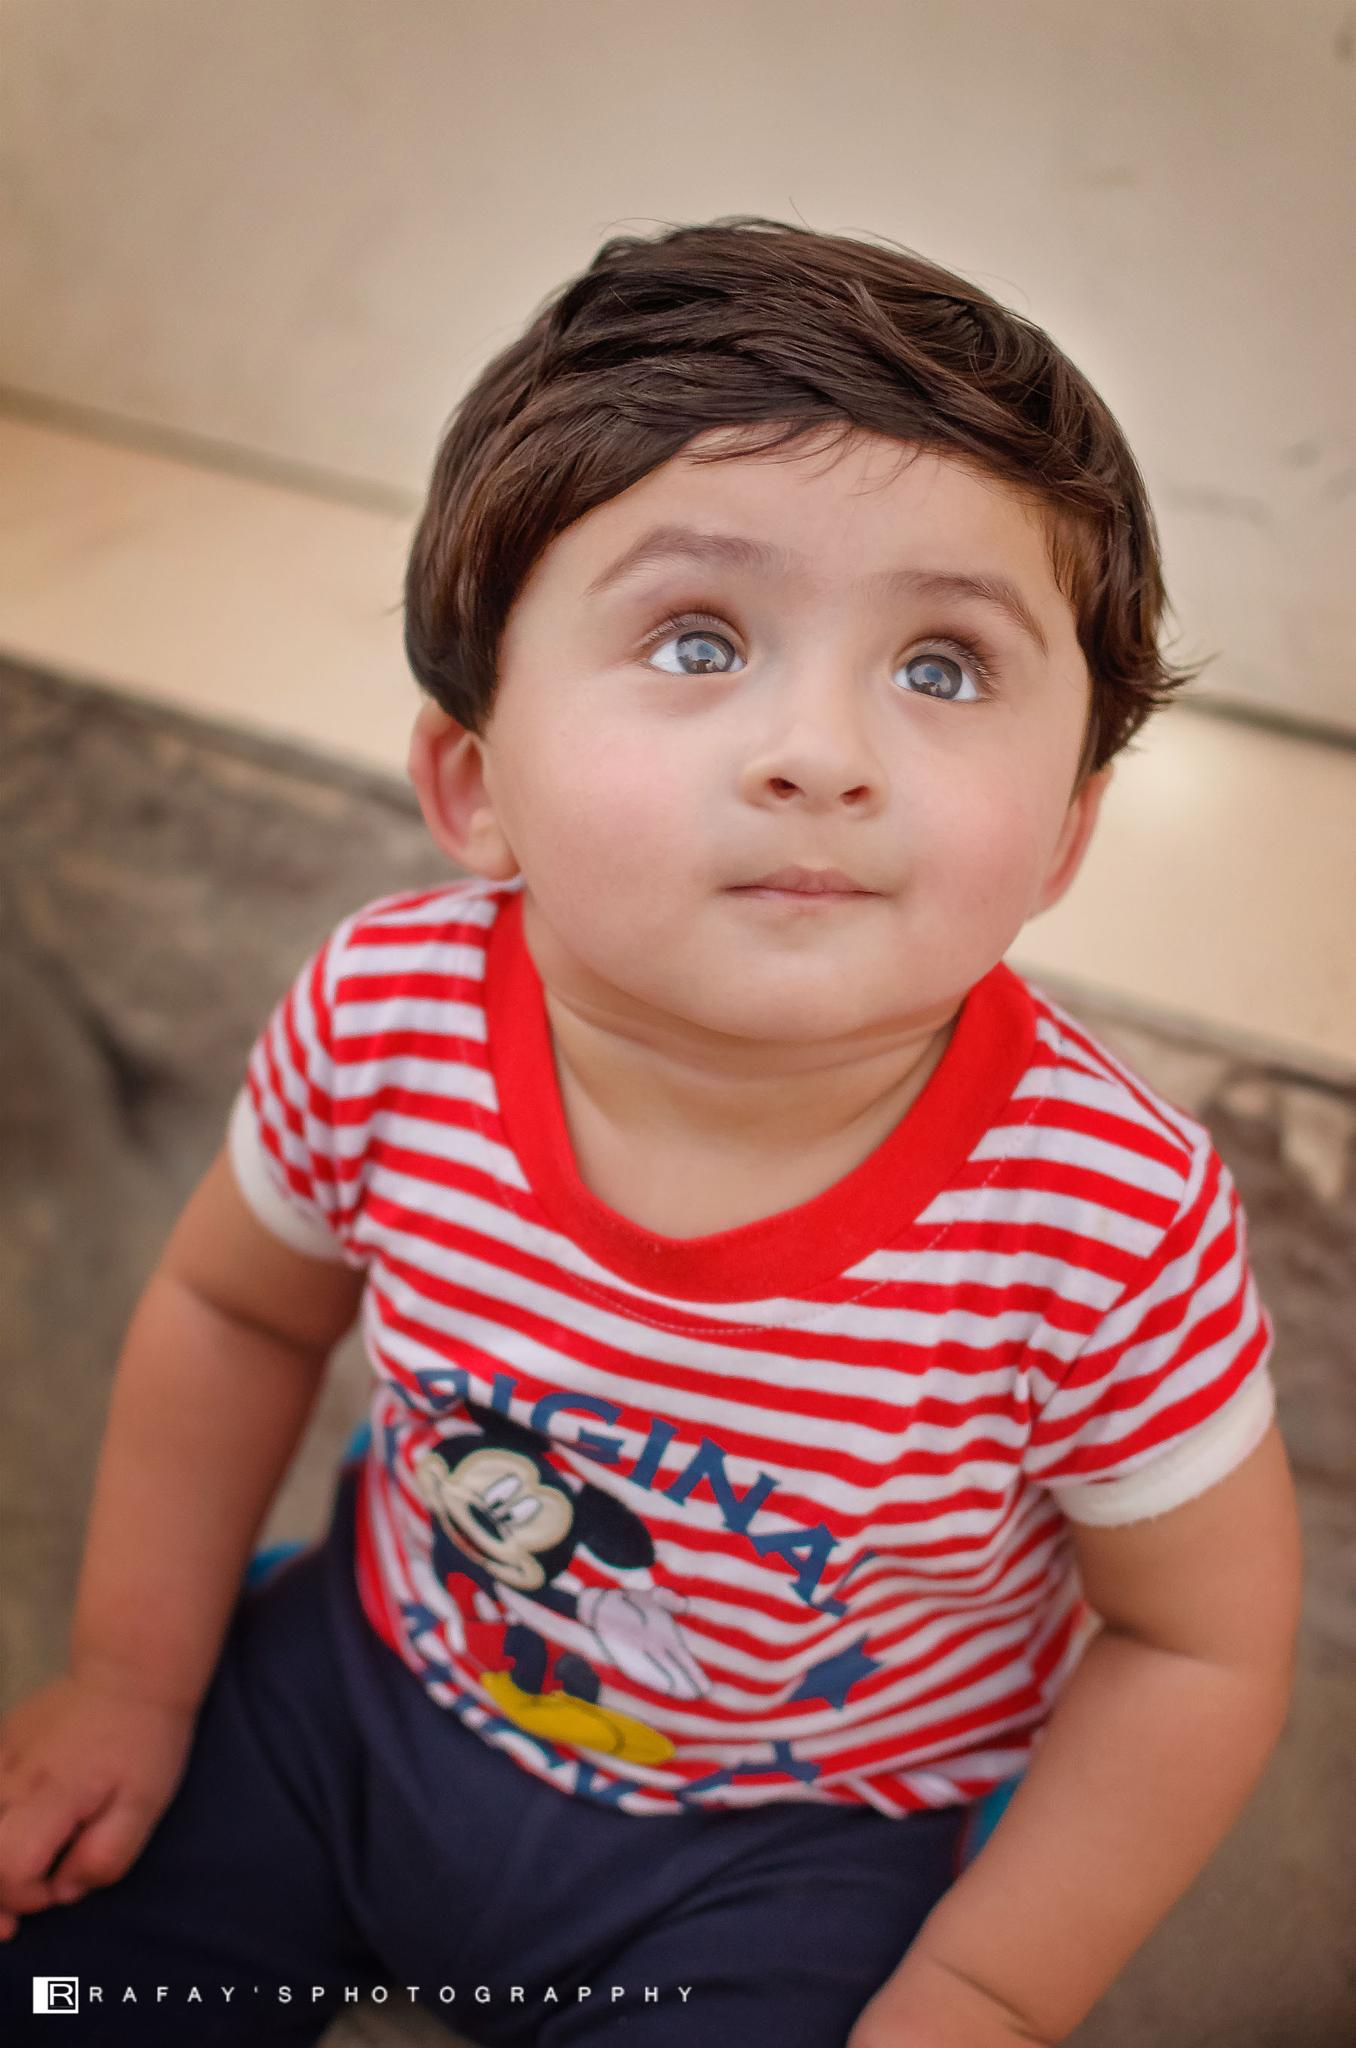 Cute Eyes by Agha Rafay